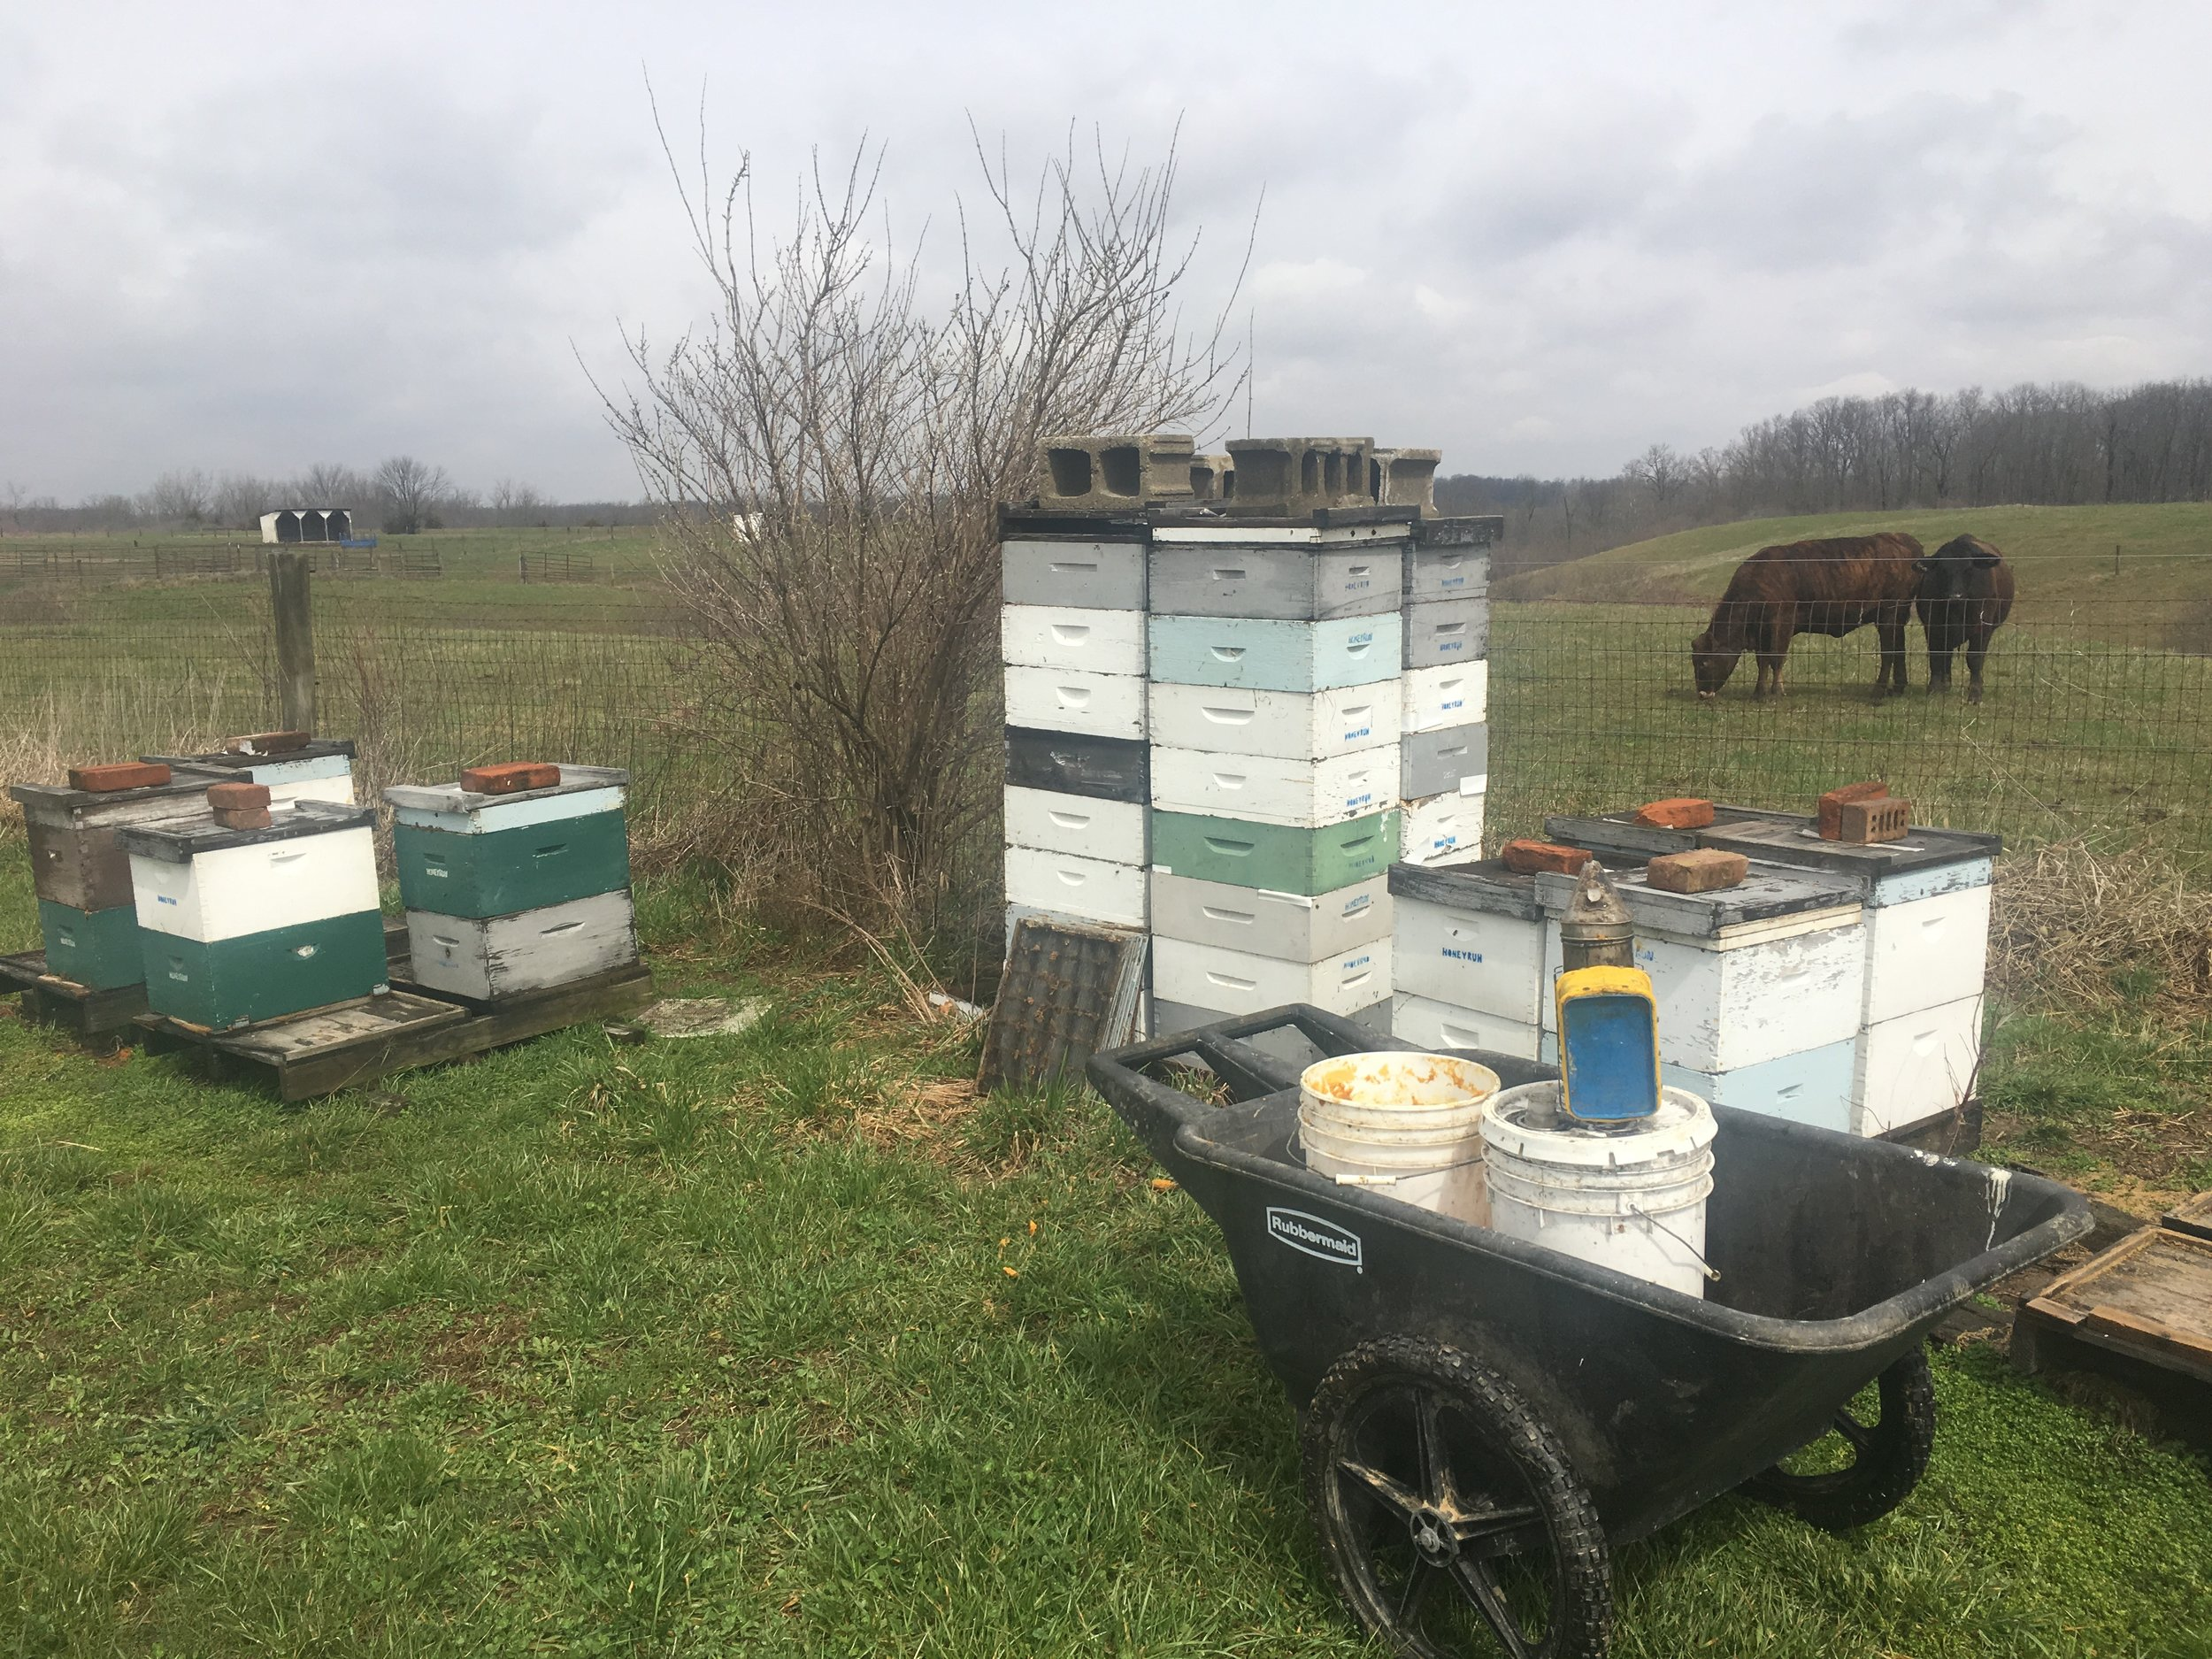 The  bees , not the cows.